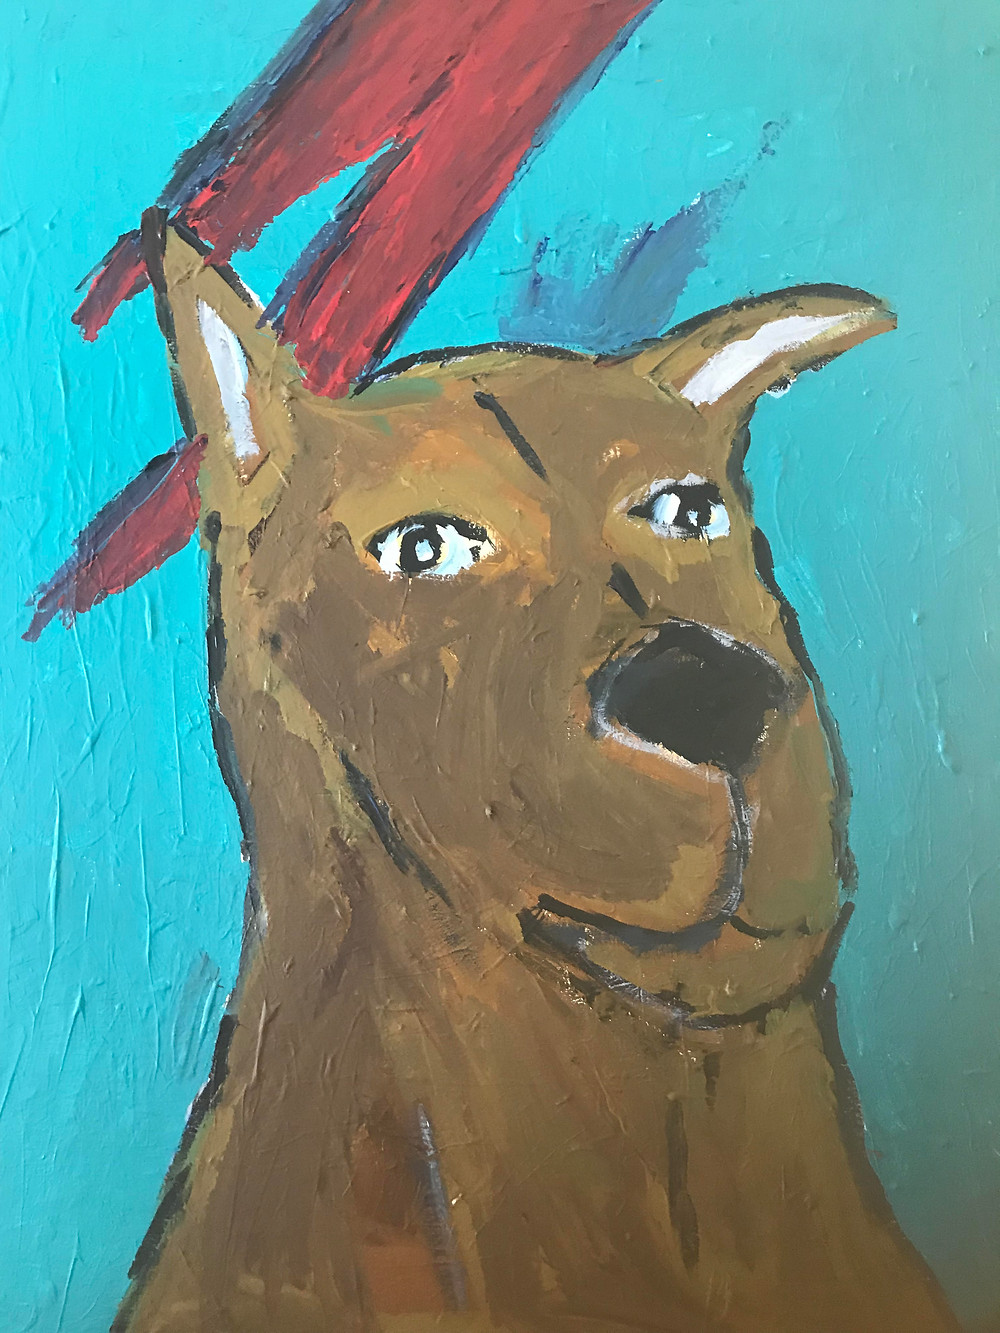 Event: Eric Ginsburg & Natalie Fisk Discuss the 6th Edition of the Fridge Art Fair NYC Happening During Frieze Week at the Nu Hotel | Dog Painting by Eric Ginsburg